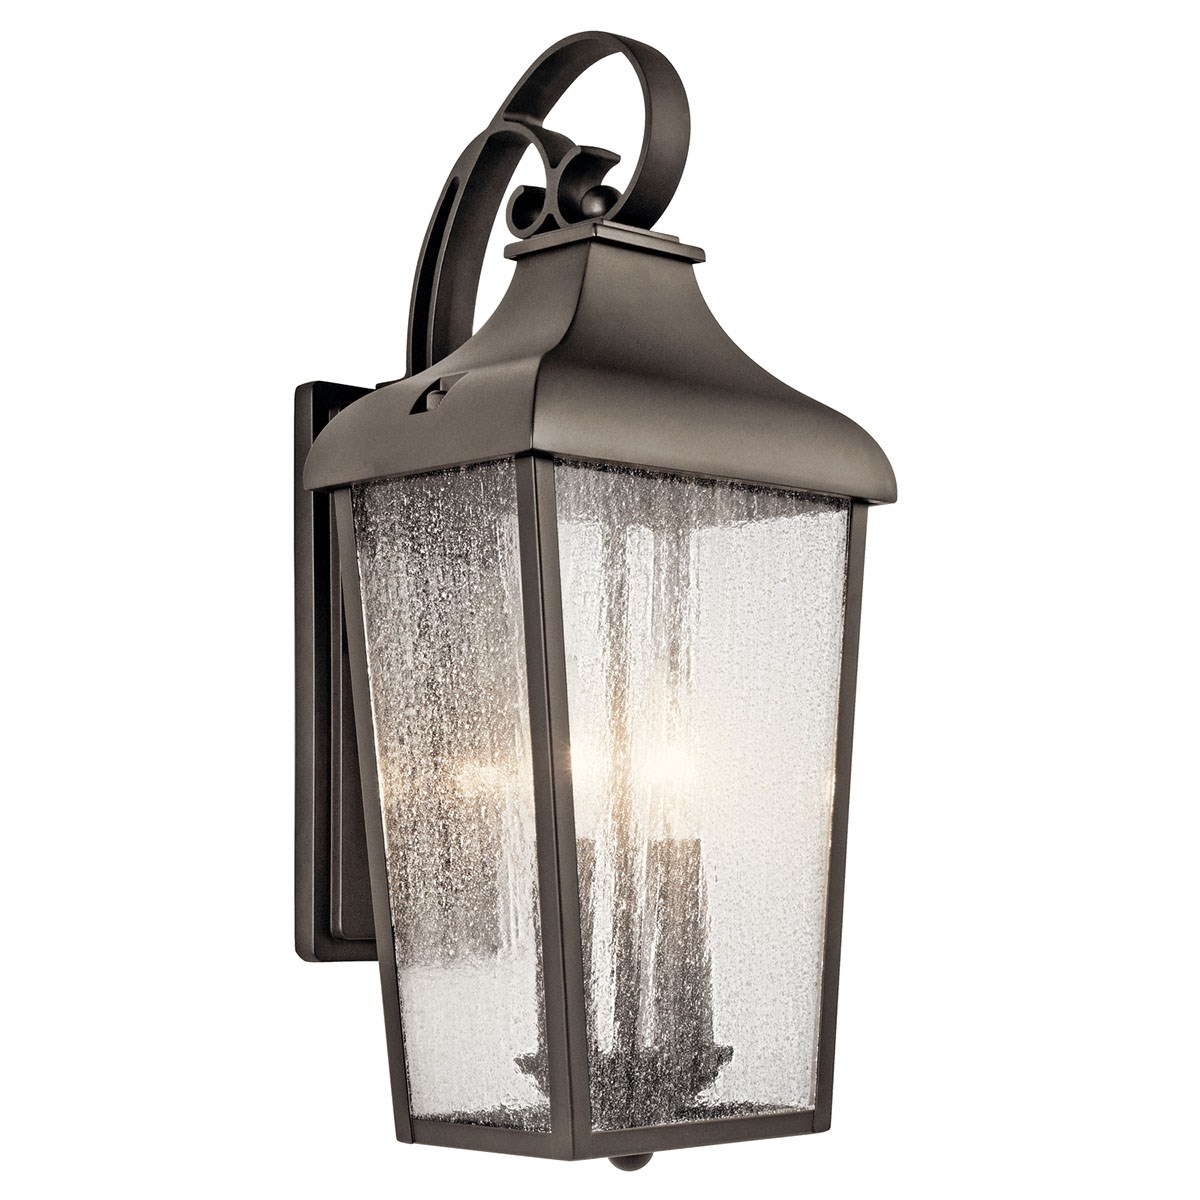 Forestdale 18 5 2 Light Wall Olde Bronze Kichler